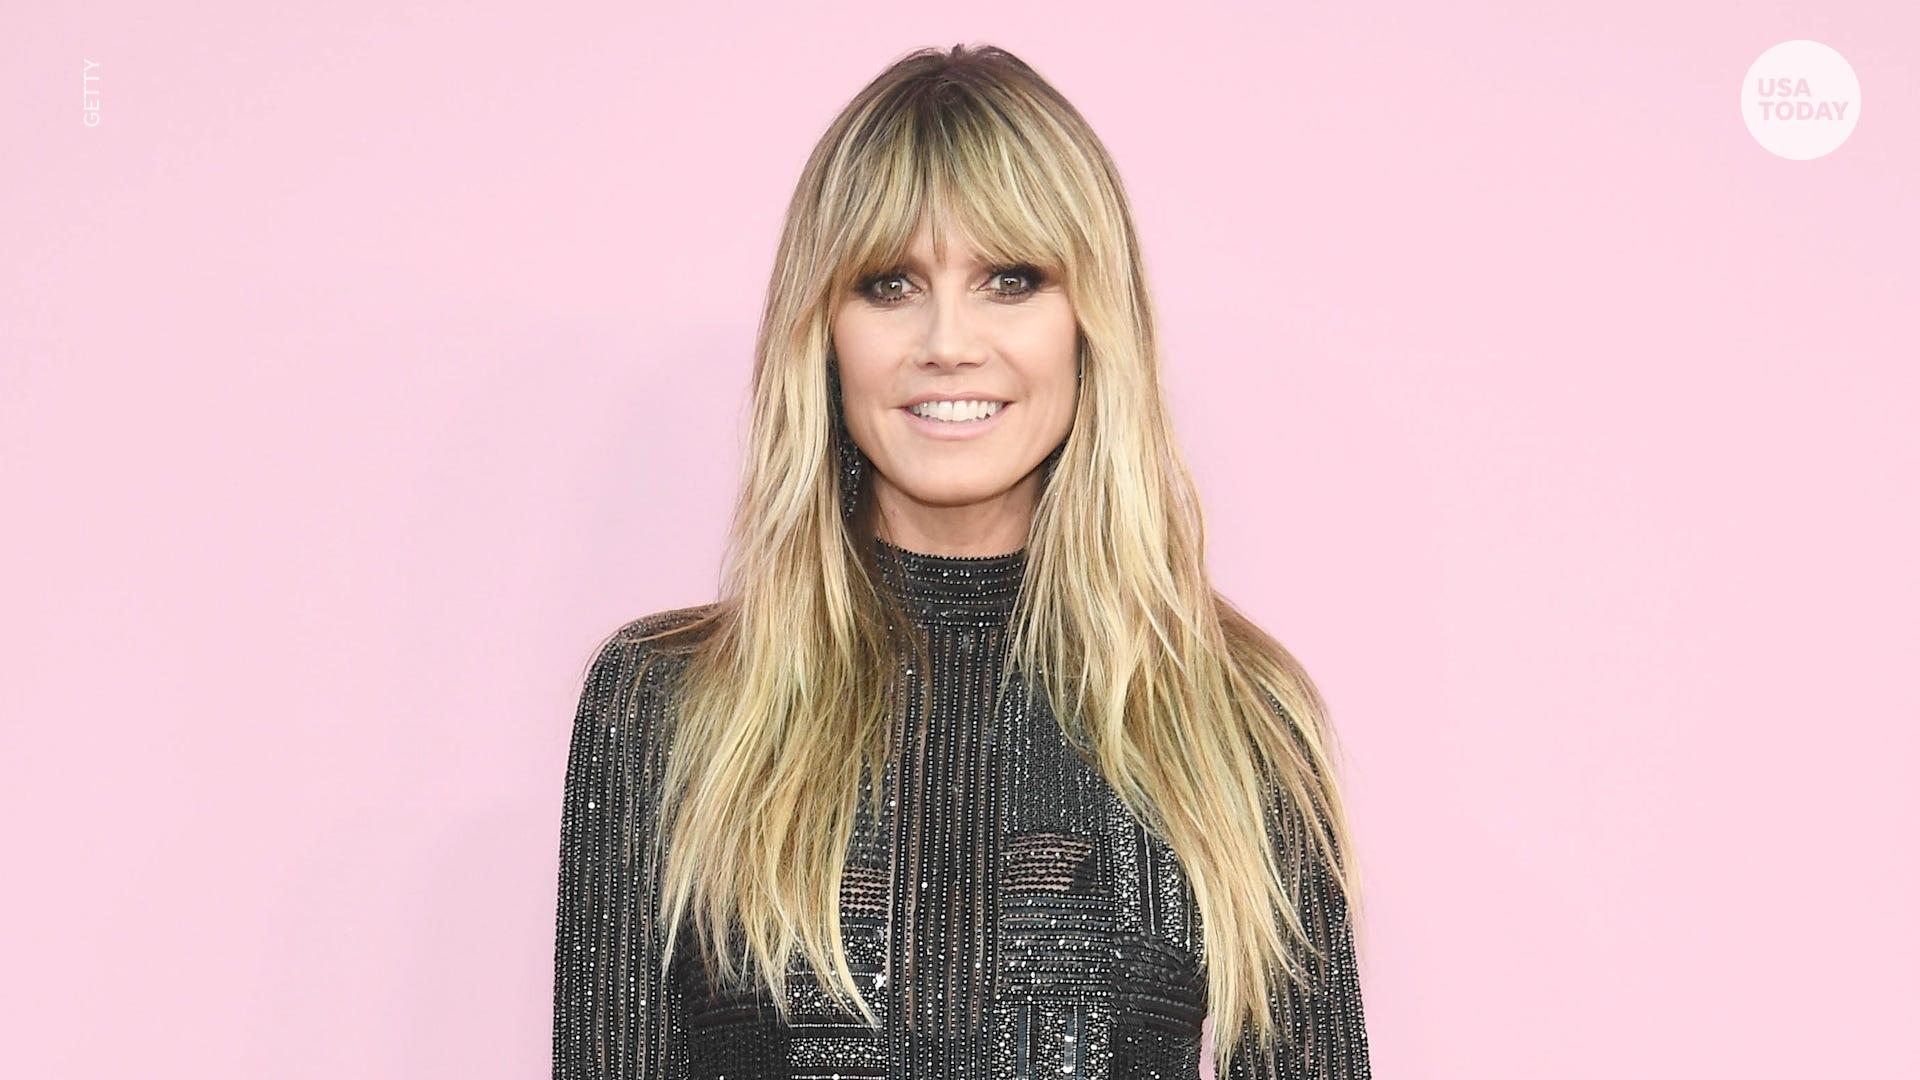 Halloween queen Heidi Klum teases this year's costume months in advance